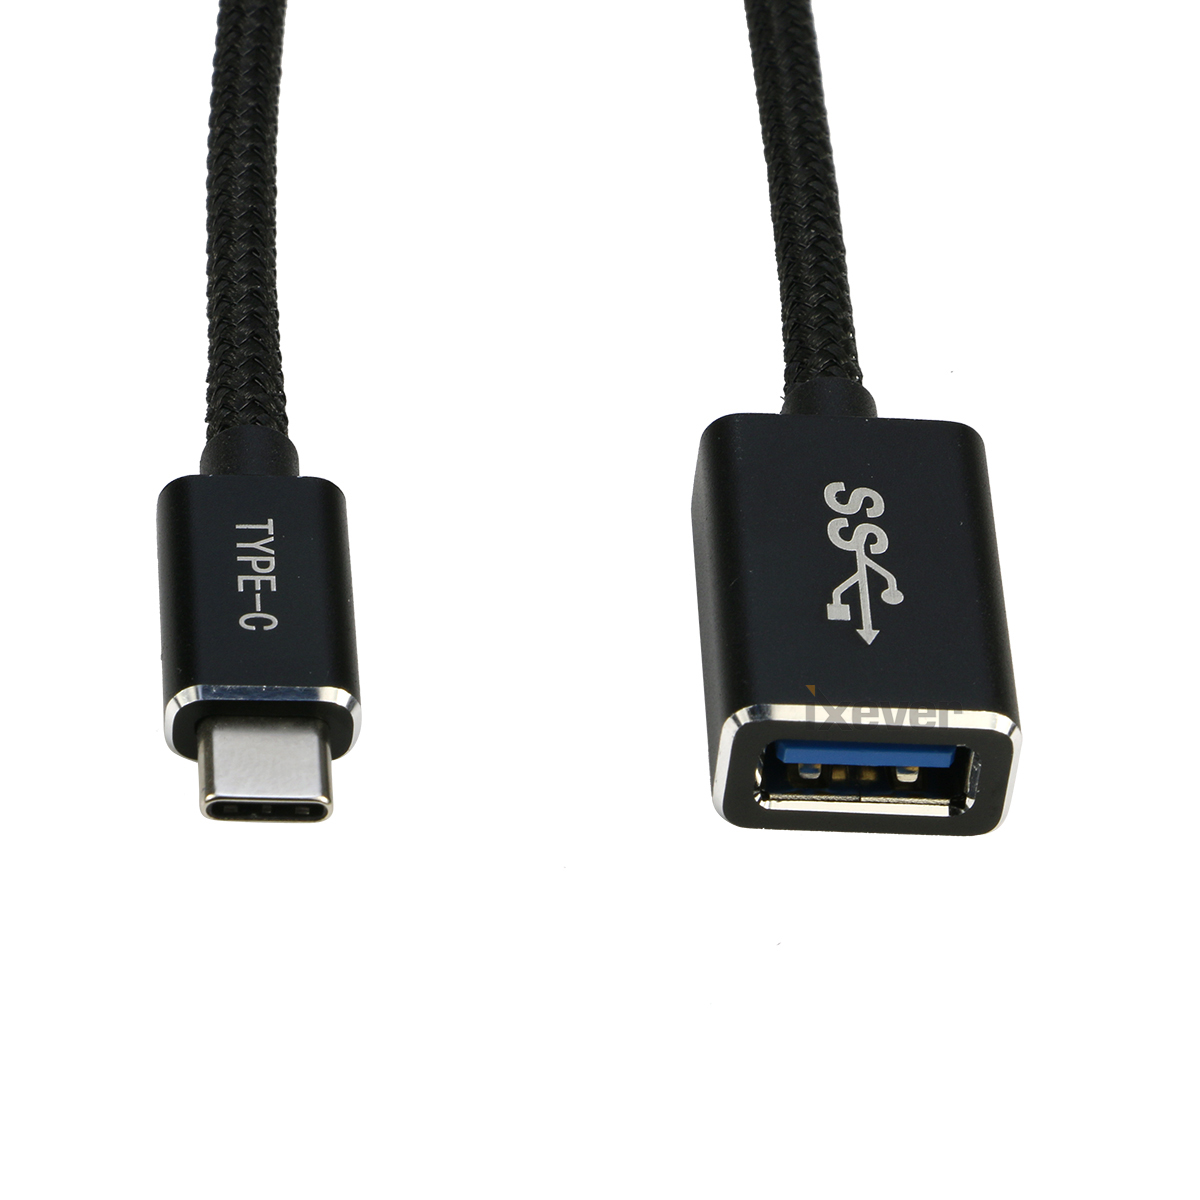 USB-C Type-C 3.1 to 2x USB Type-A OTG Adapter Cable Power For Apple Macbook Air